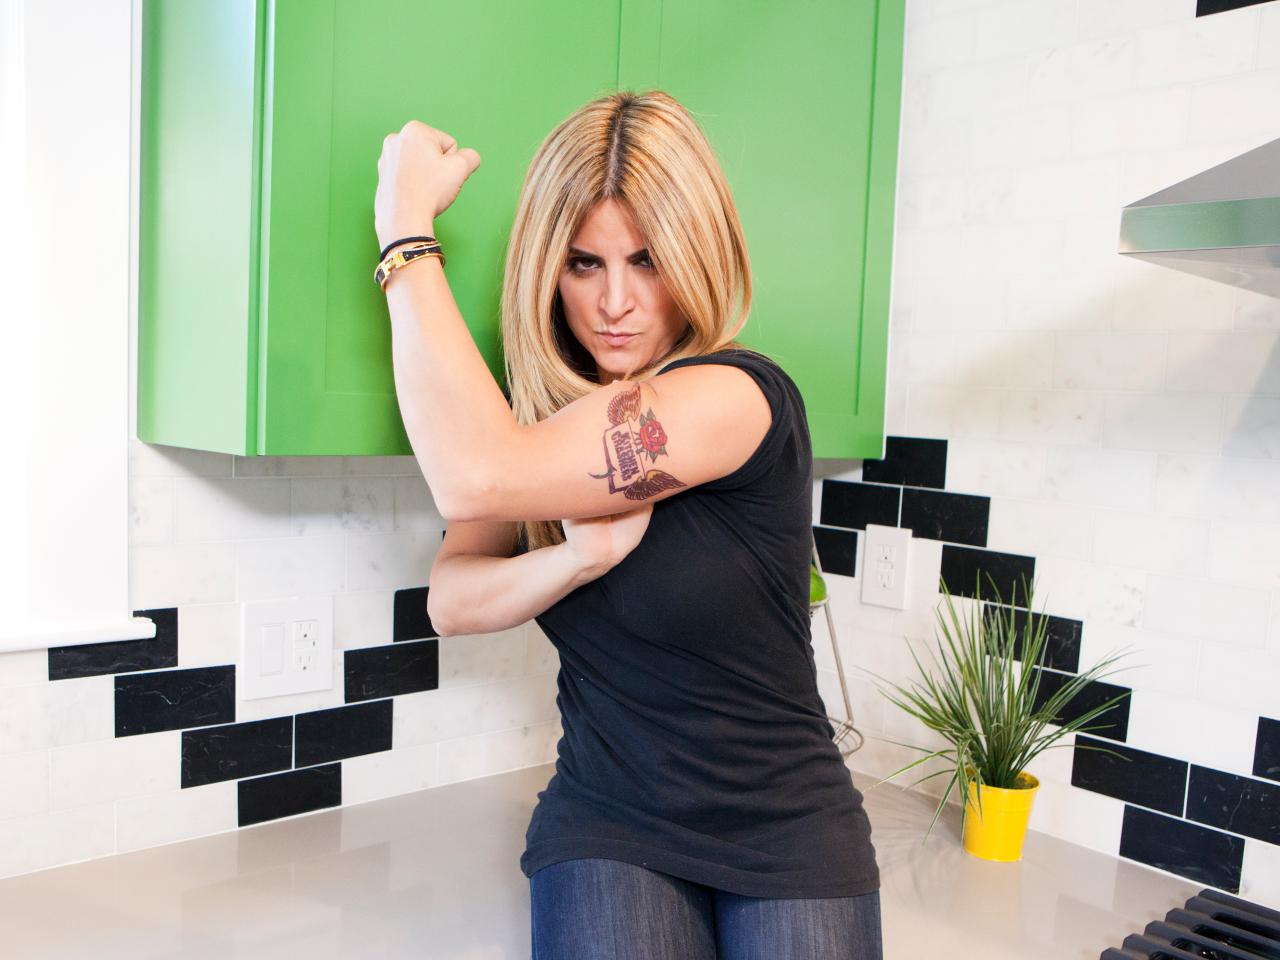 Psst diy celebs want to show you their tattoos diy Is kitchen crashers really free